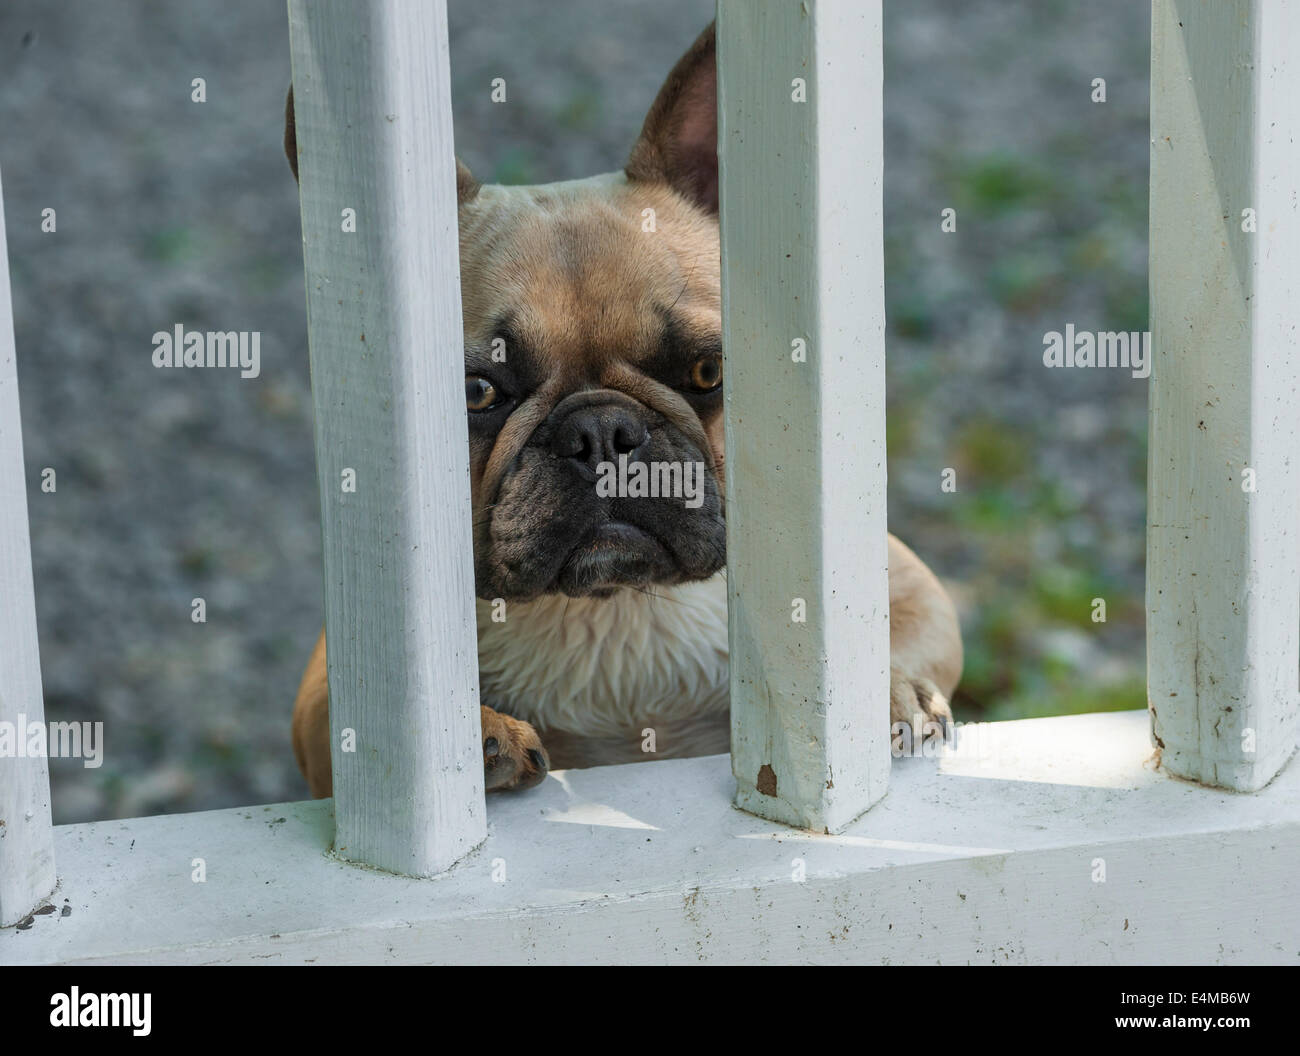 French Bulldog standing and peering through gate bars - Stock Image